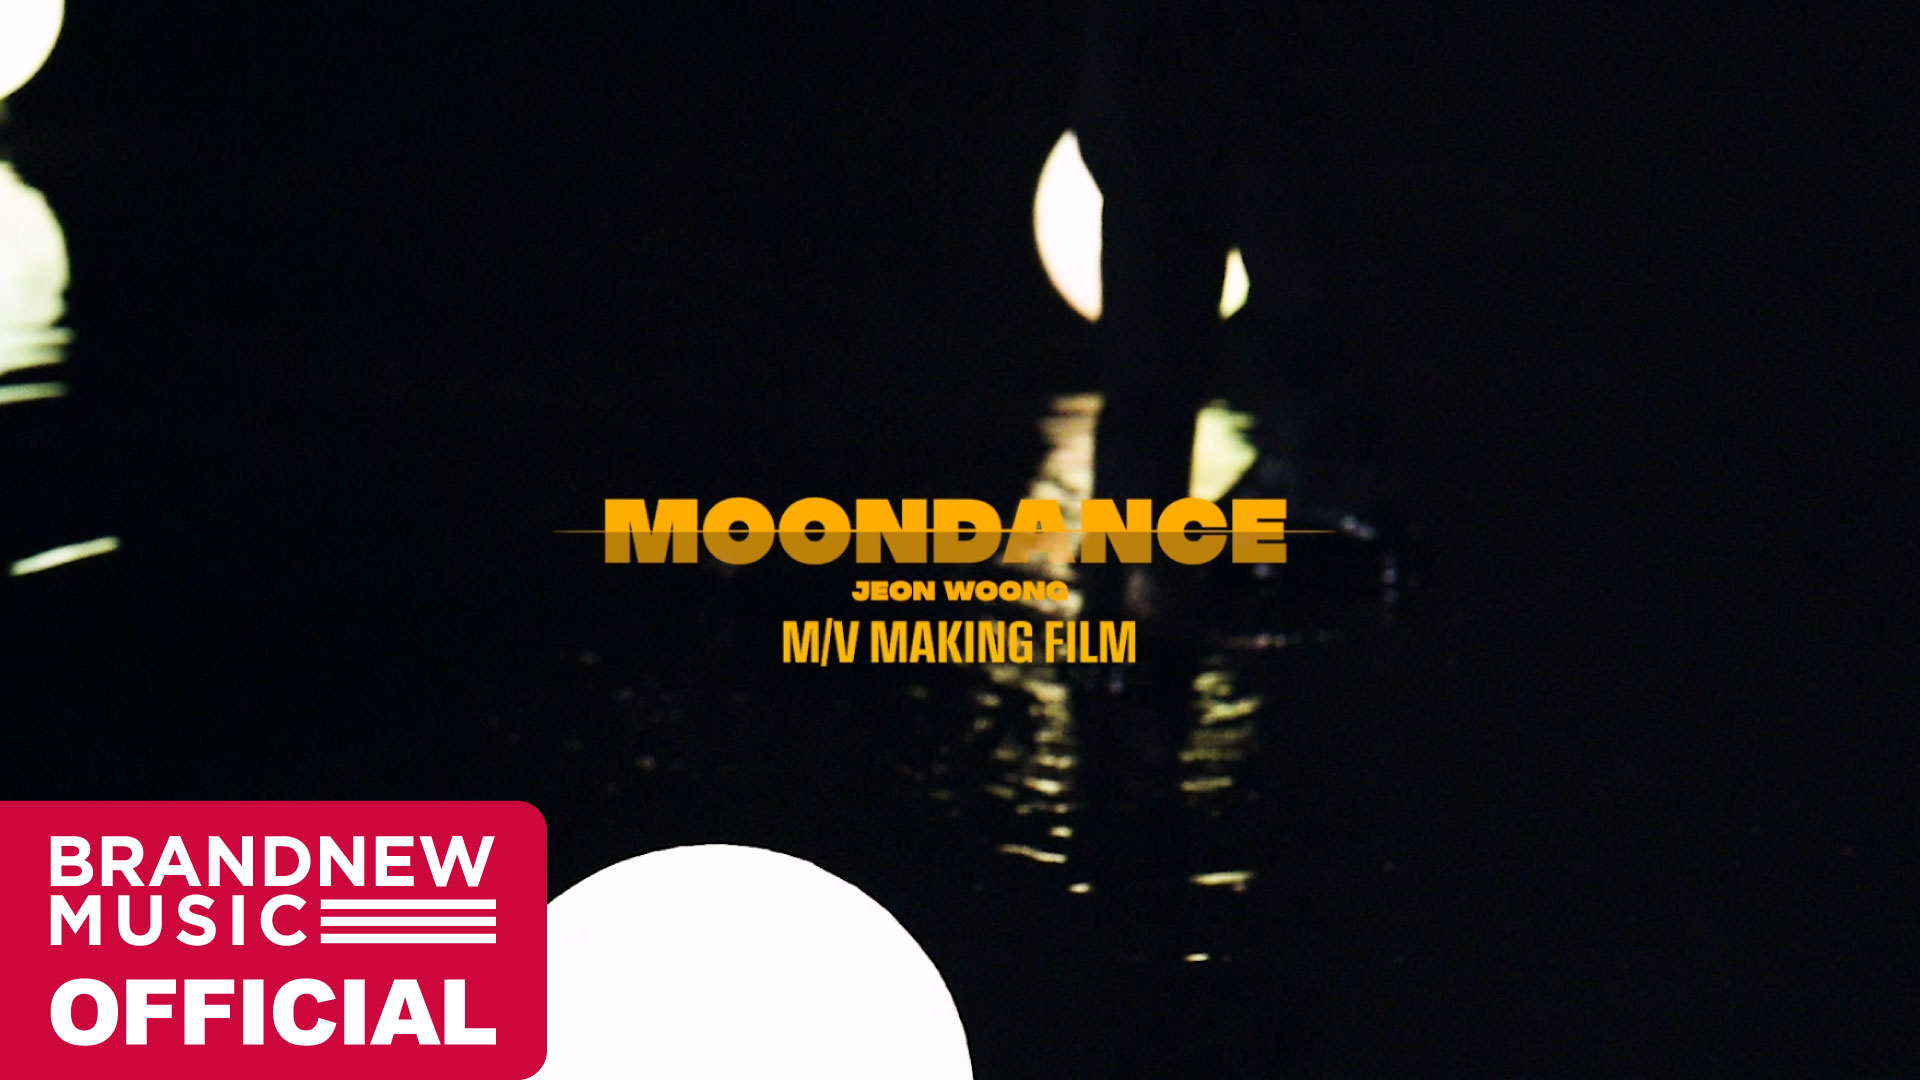 AB6IX (에이비식스) 전웅 (JEON WOONG) 'MOONDANCE' M/V MAKING FILM